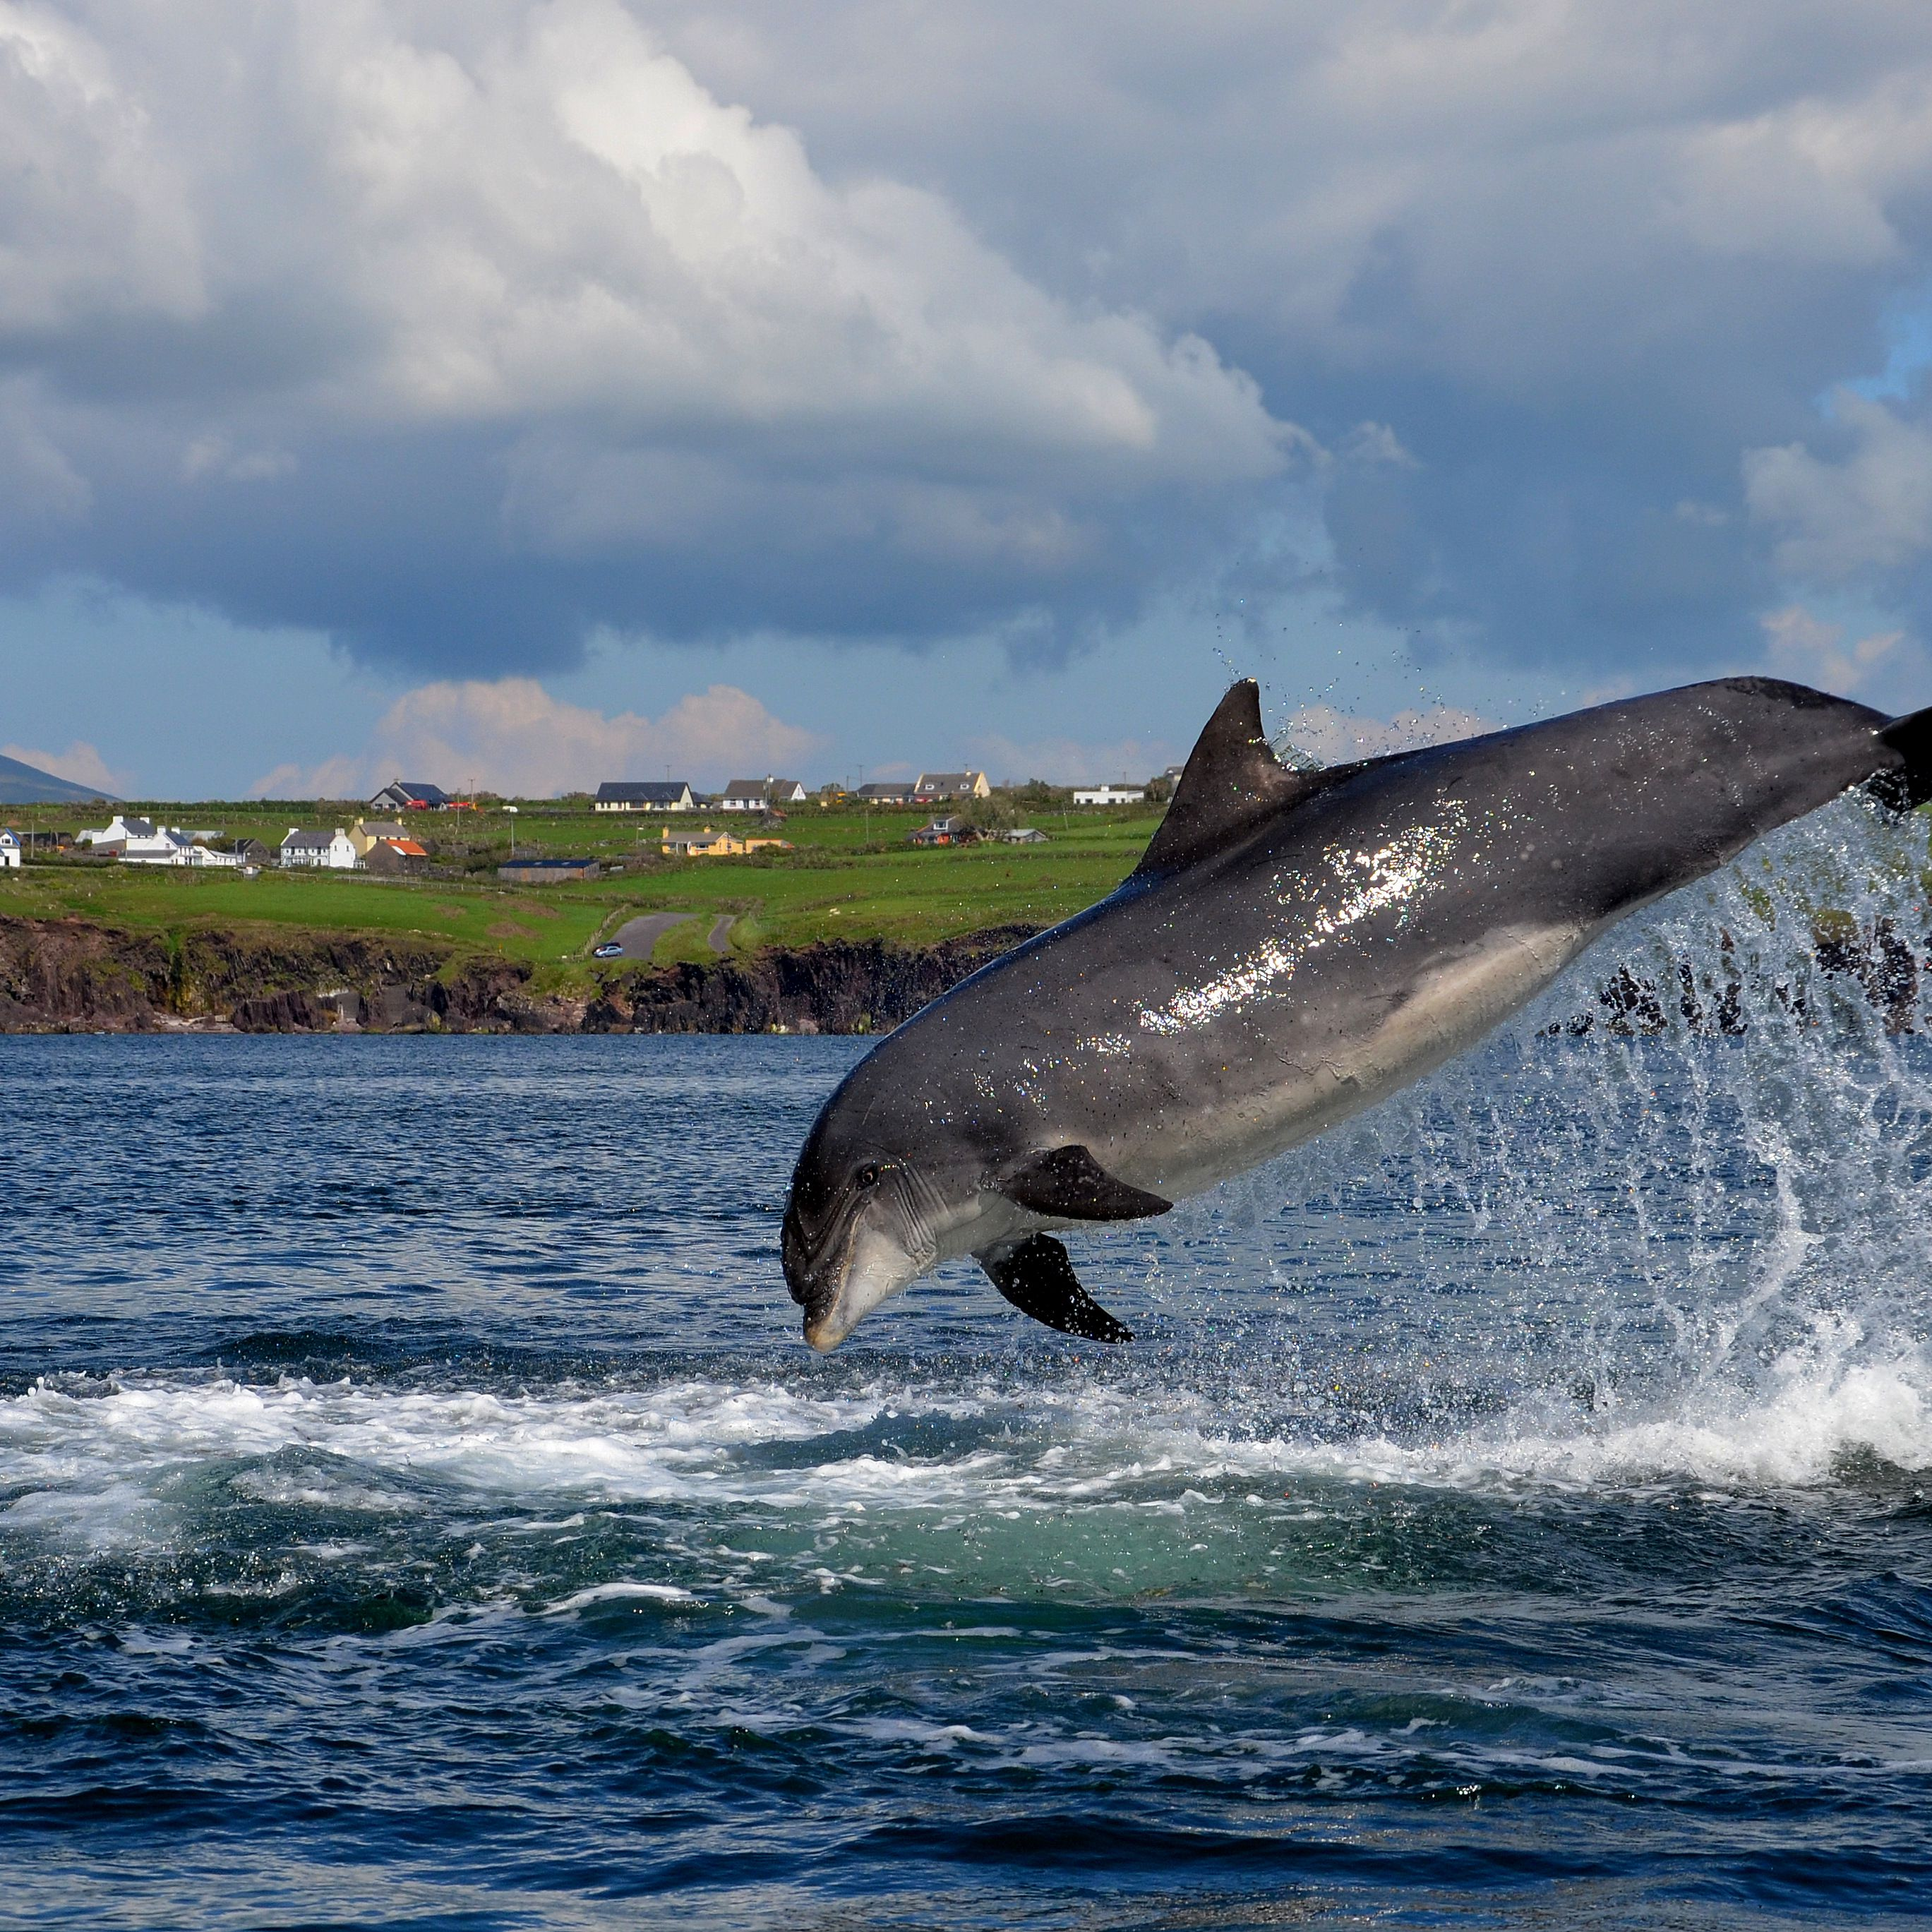 Fungie Dingle S Dolphin But Not A Wild Animal You can get a boat ride out to swim with him. fungie dingle s dolphin but not a